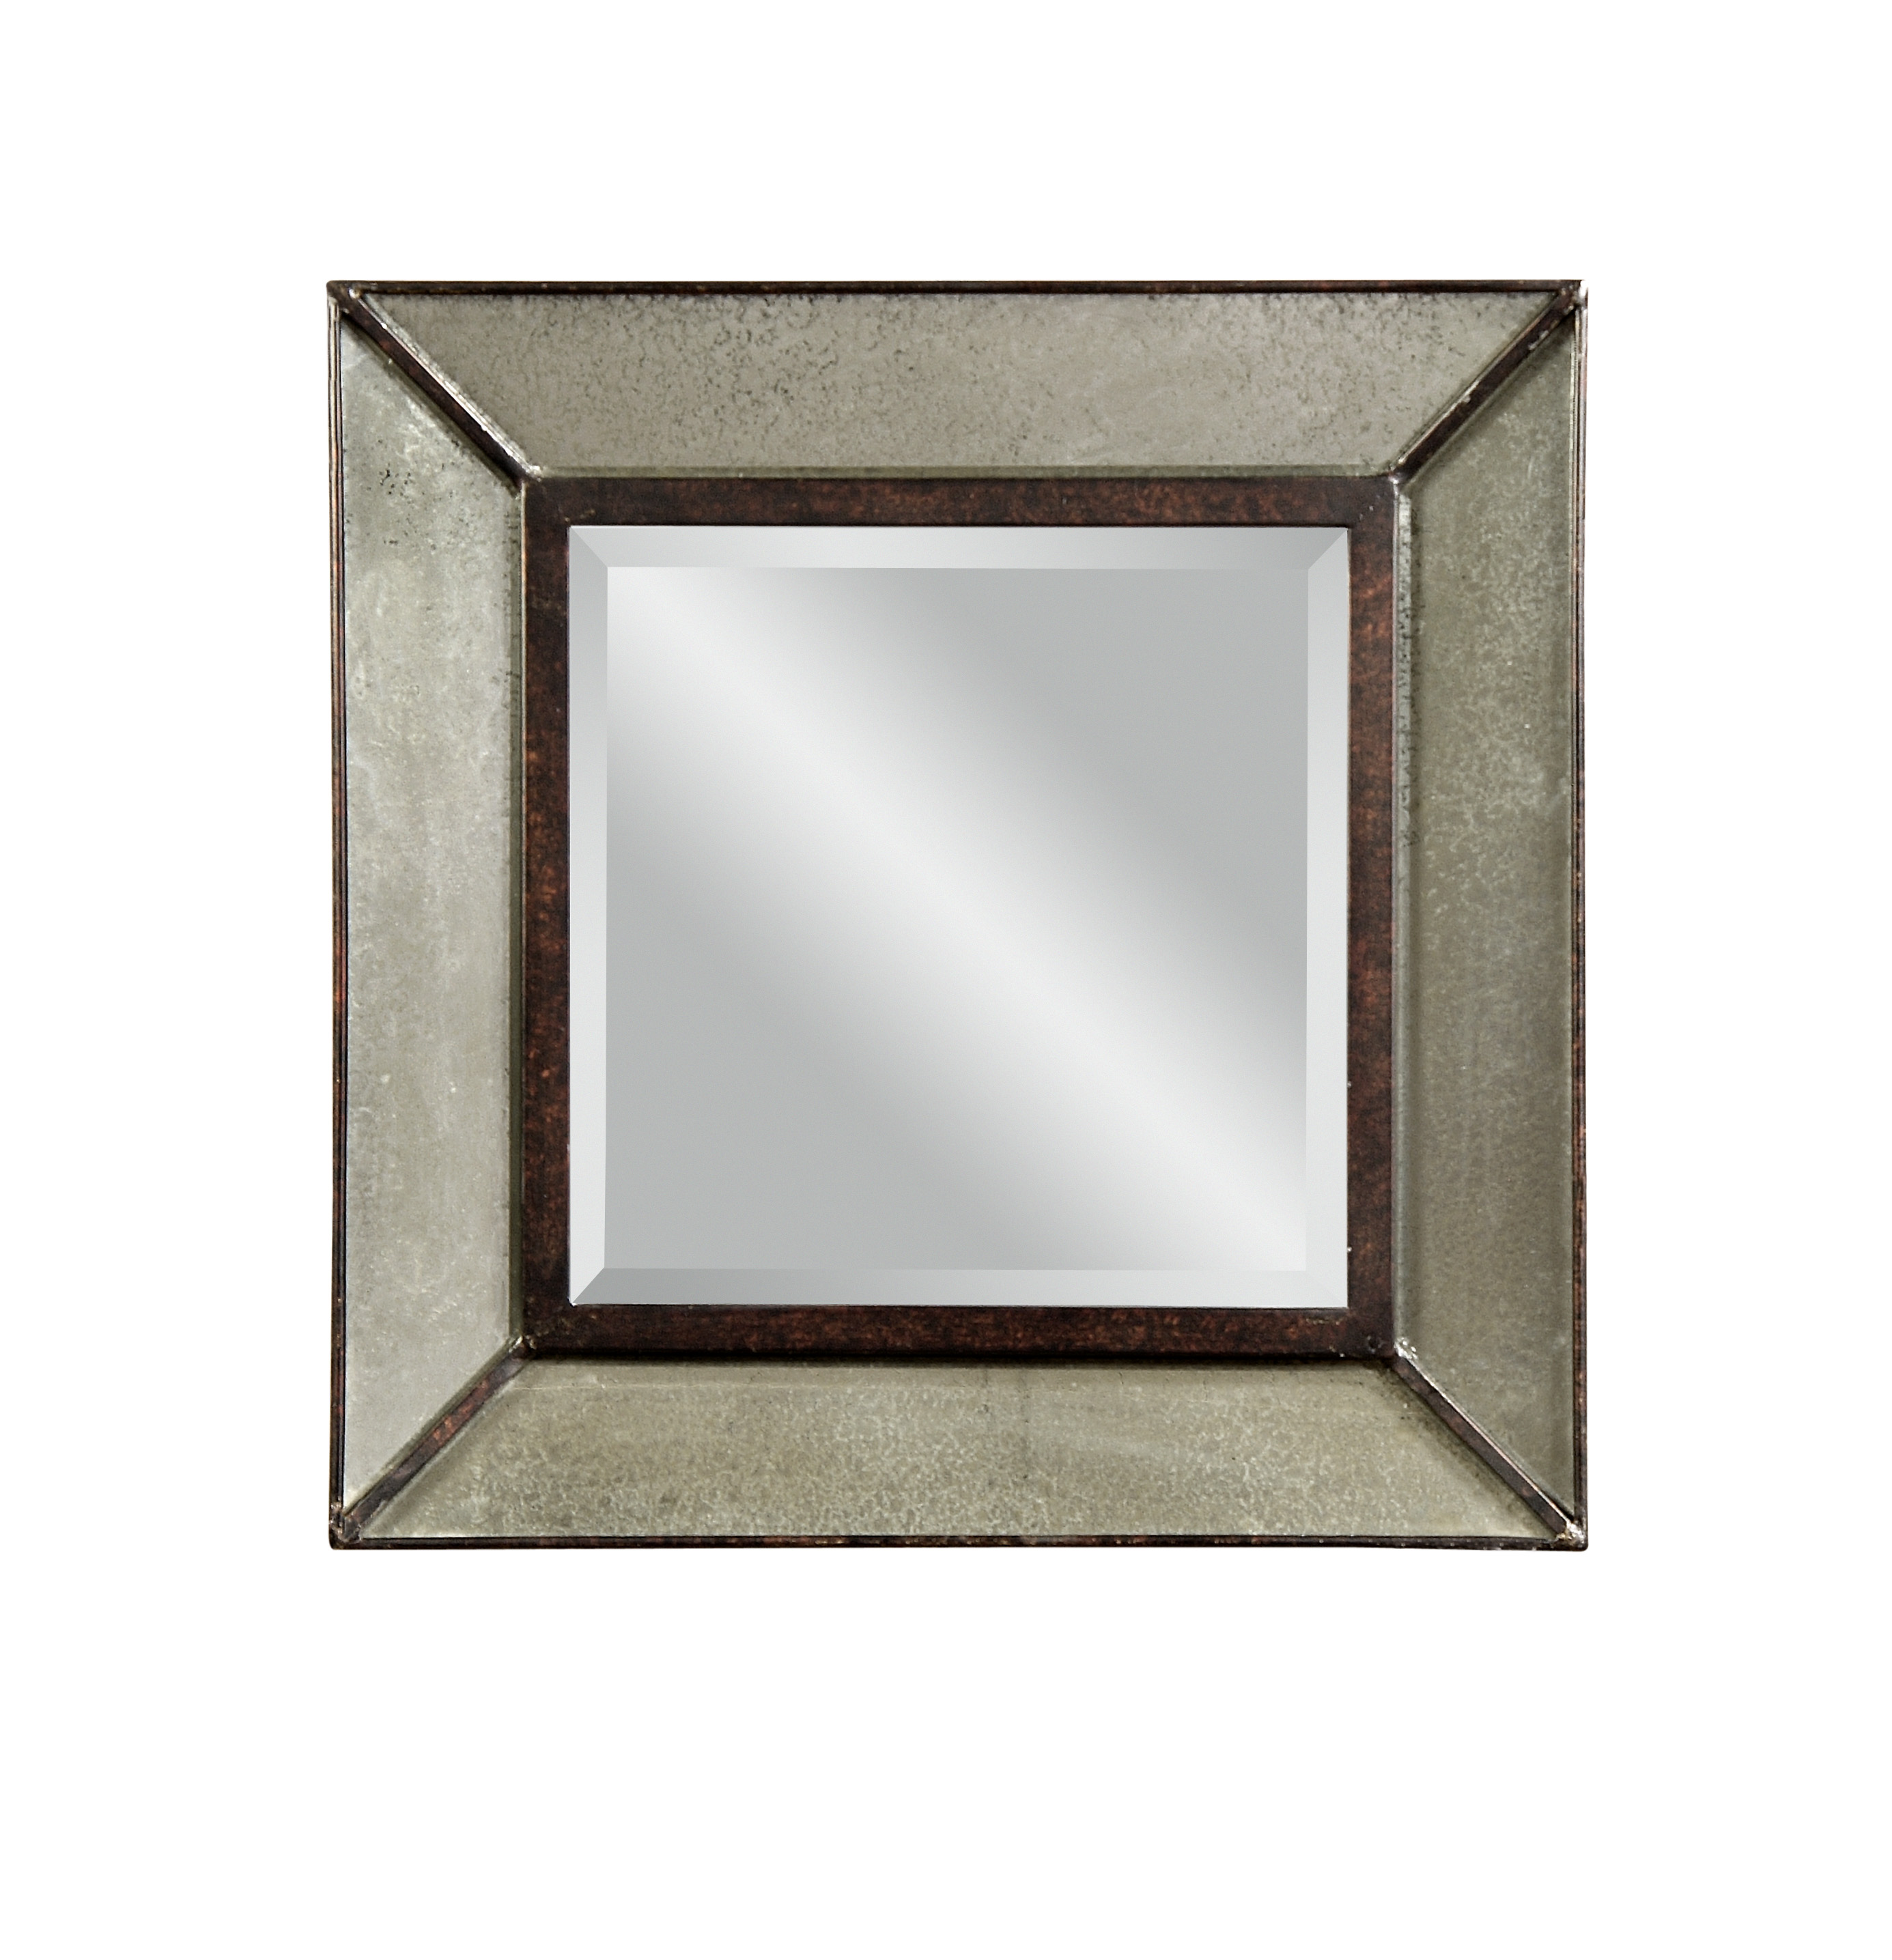 Belgian Luxe Edinborough Wall Mirror by Bassett Mirror at Alison Craig Home Furnishings